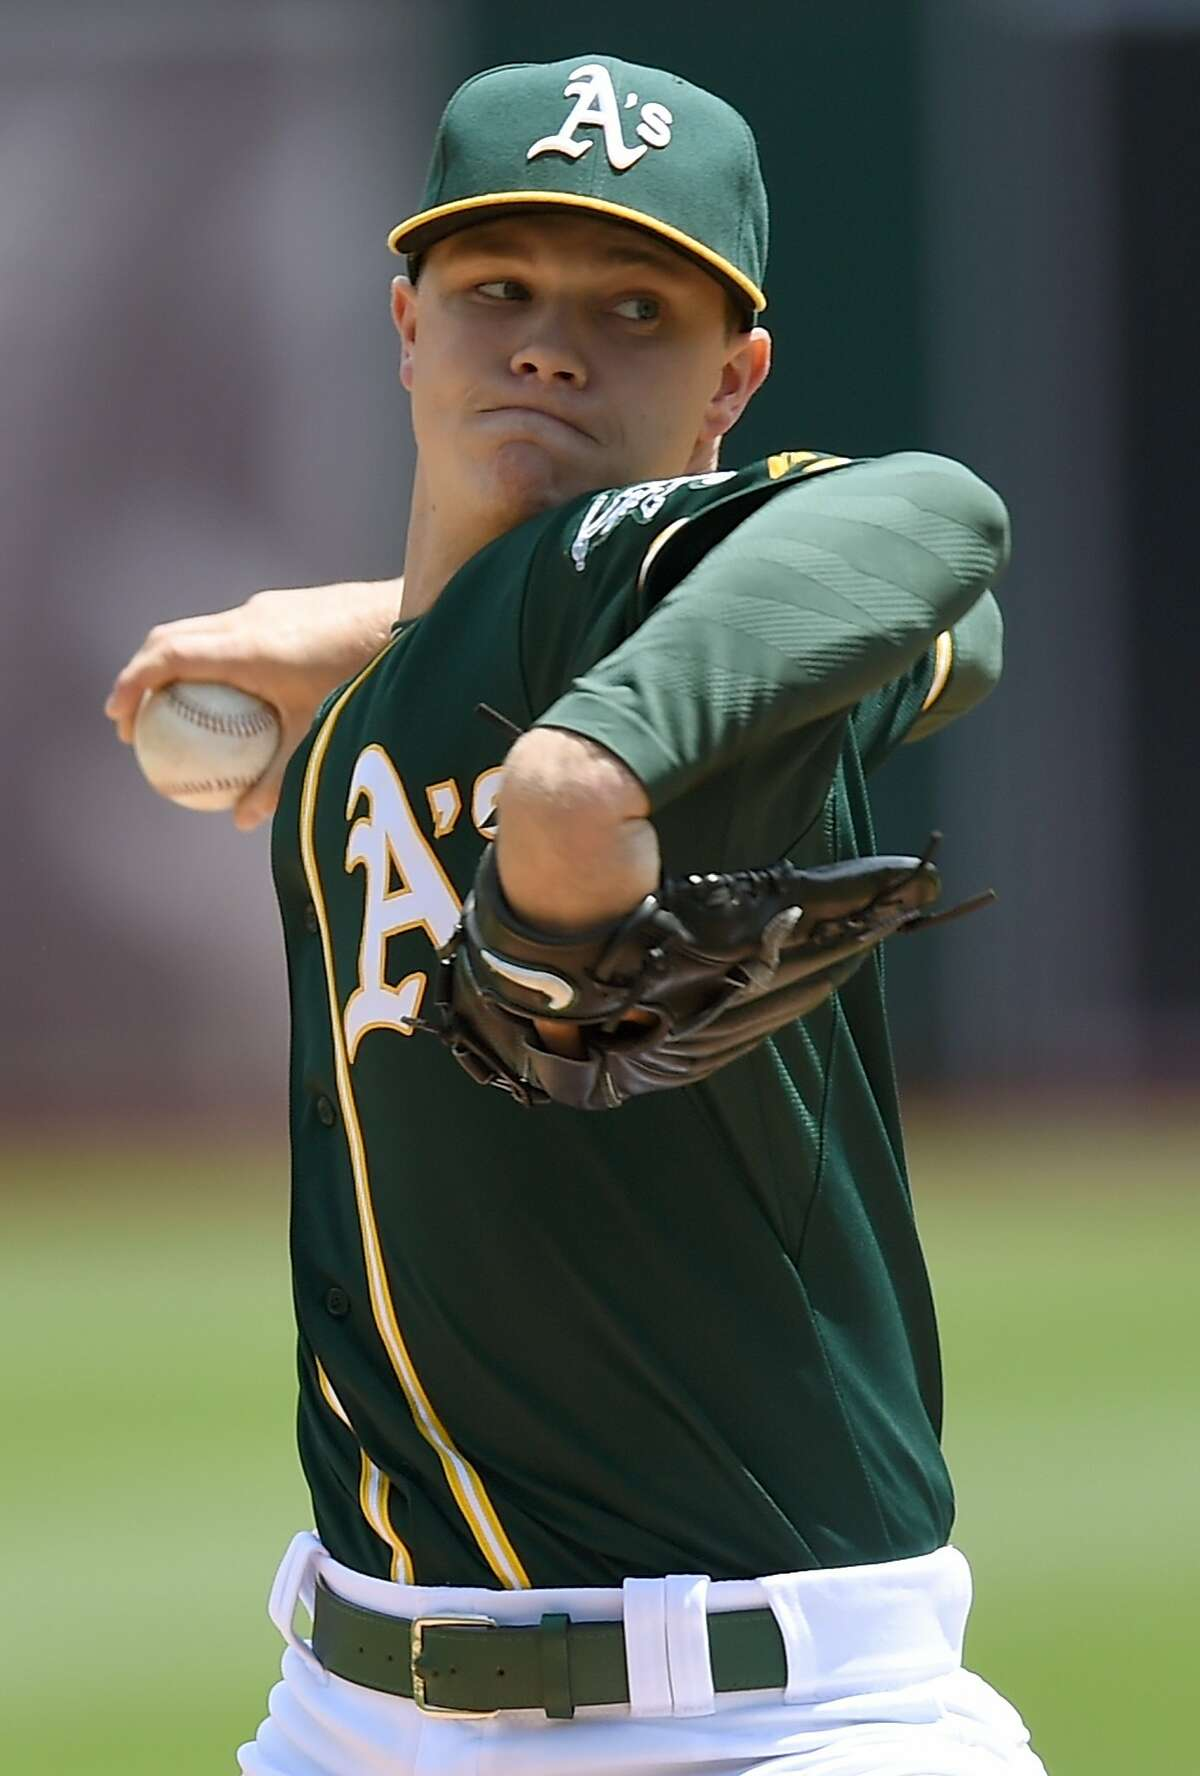 OAKLAND, CA - MAY 13: Sonny Gray #54 of the Oakland Athletics pitches against the Boston Red Sox in the top of the first inning at O.co Coliseum on May 13, 2015 in Oakland, California. (Photo by Thearon W. Henderson/Getty Images)